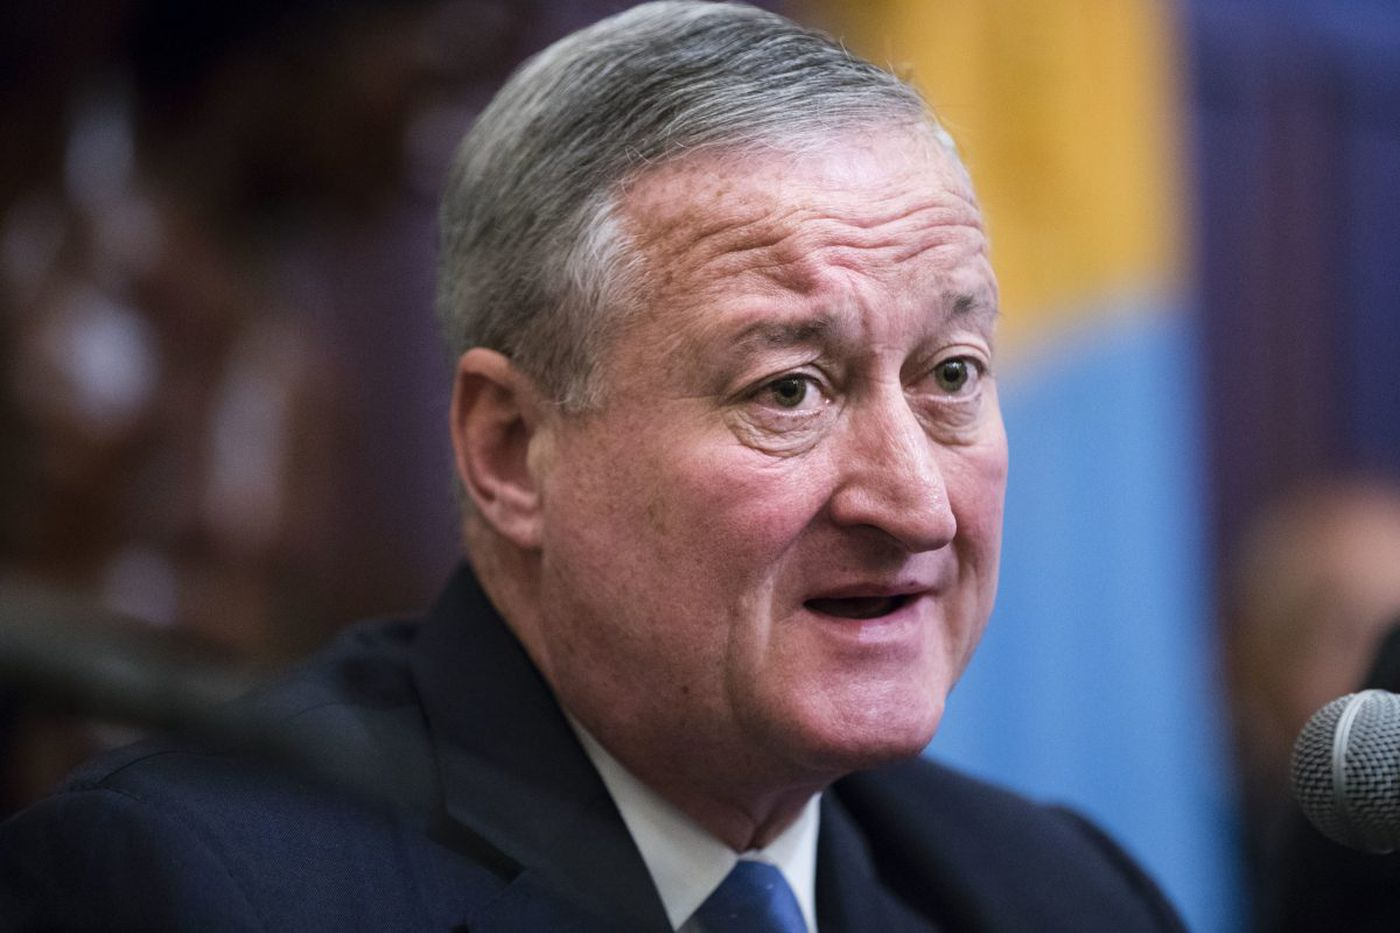 Inaugural Iceland flight with Kenney aboard is diverted